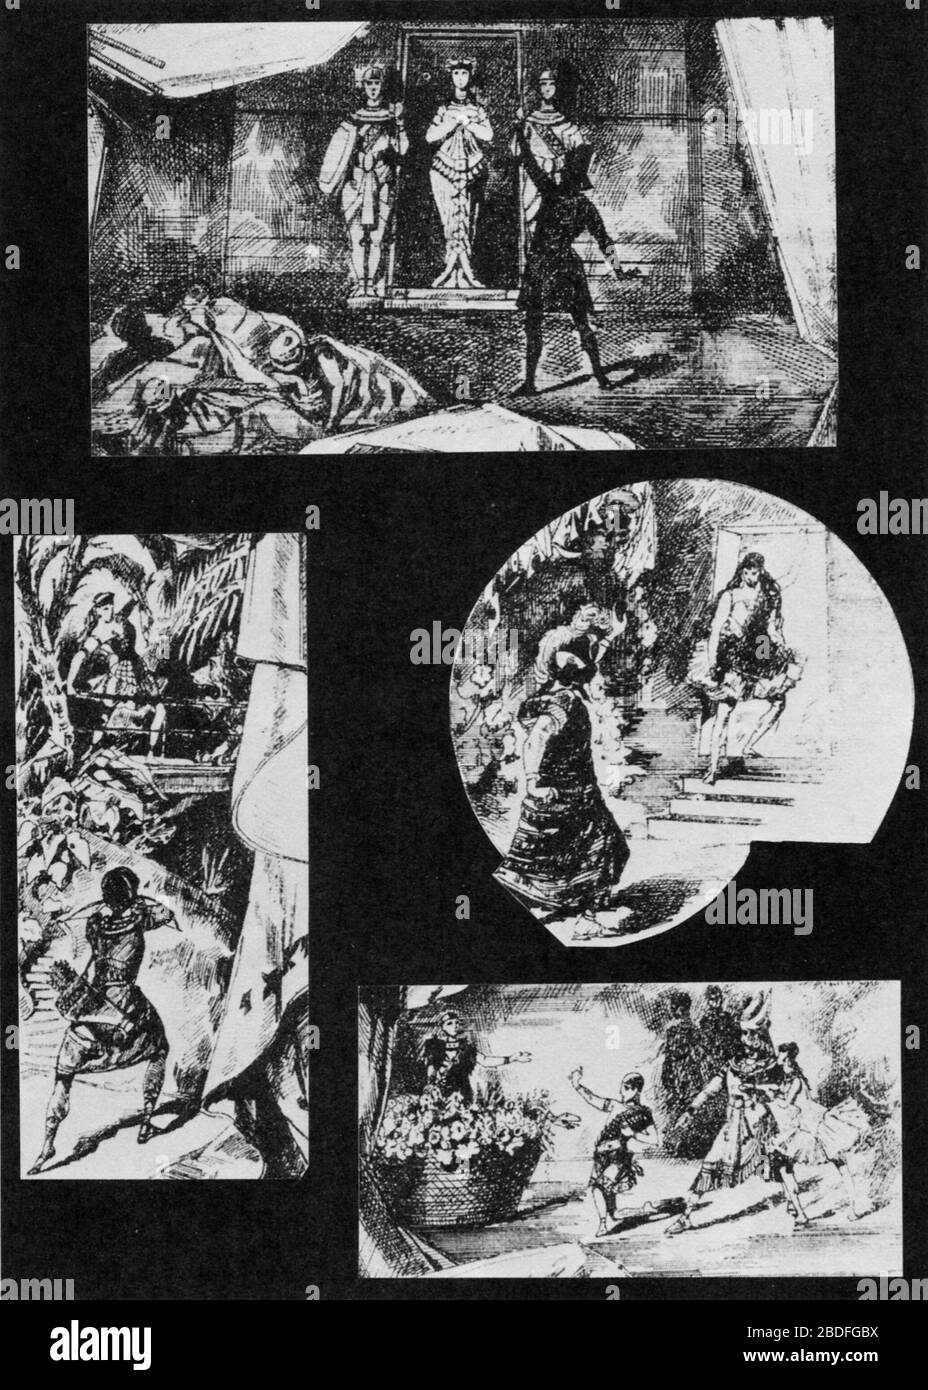 """""""Lithograph of scenes by P. A. Grogoriev of scenes from the choreographer Marius Petipa (1811-1910) and the composer Cesare Pugni's (1803-1870) ballet The Pharaoh's Daughter.; 1885; The Divine Virginia - A Biography of Virginia Zucchi by Ivor Guest. Marcel Dekker, Inc. 1977; Pavel Anreievich Grigoriev (1840-1903); """" Stock Photo"""